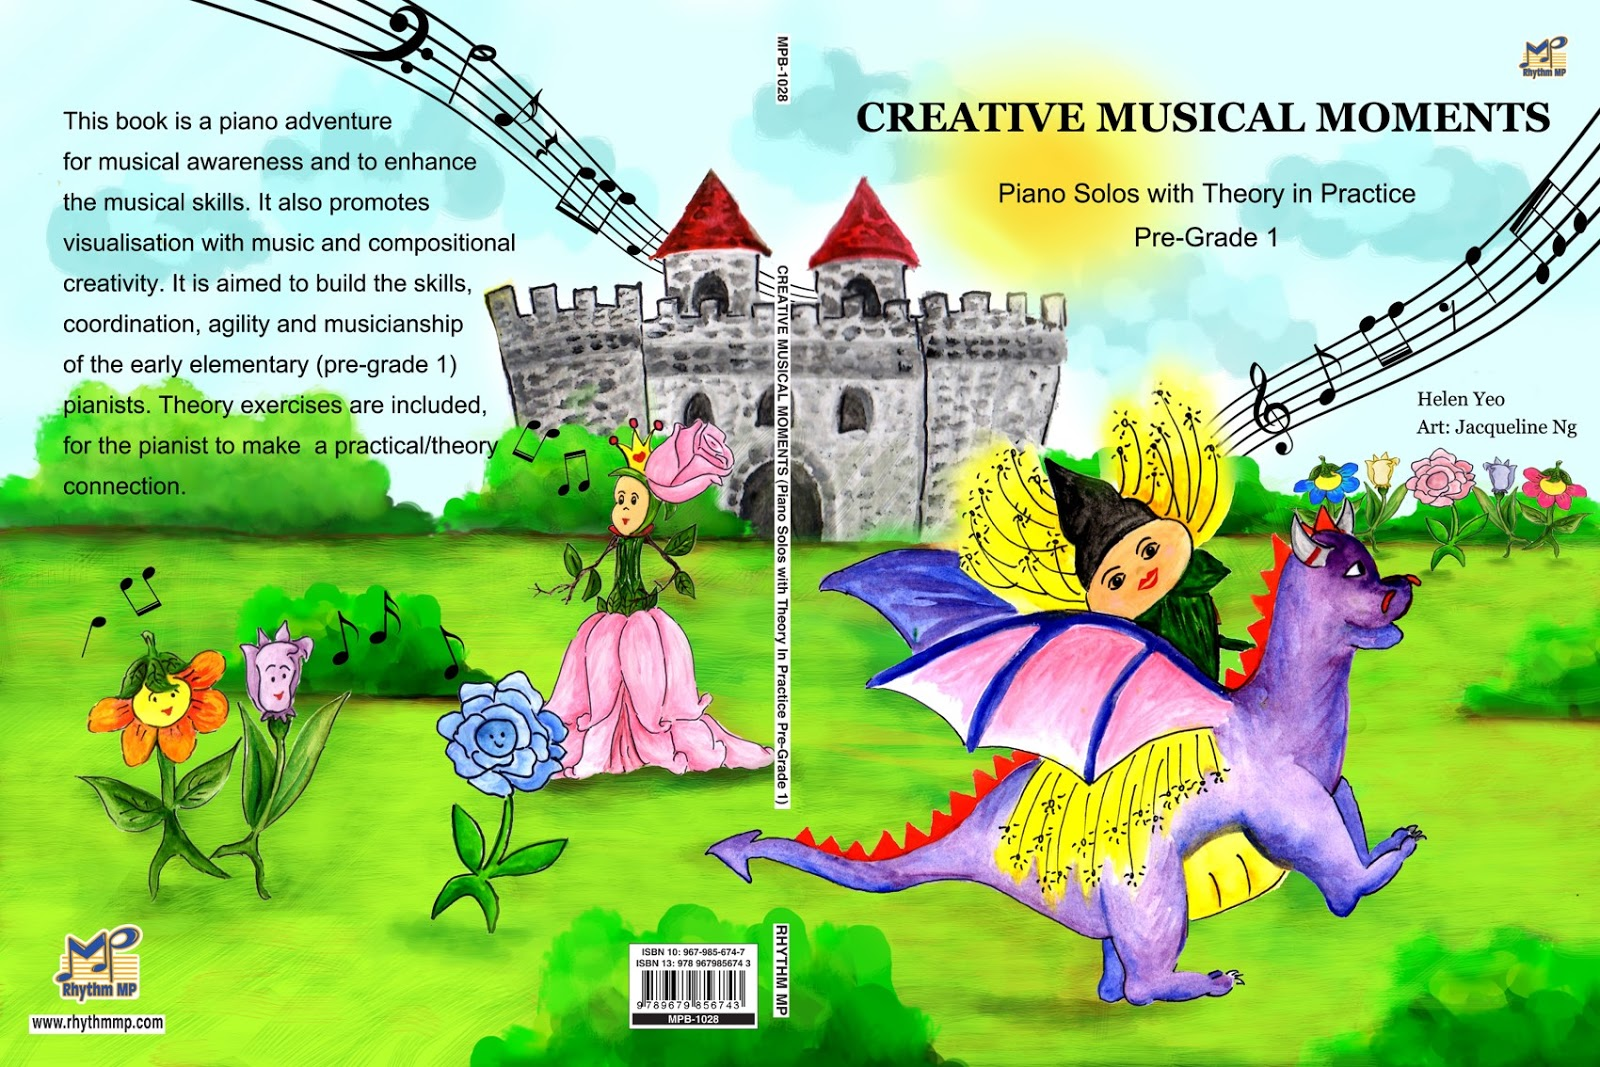 small resolution of Rhythm MP • the music page: Creative Musical Moments